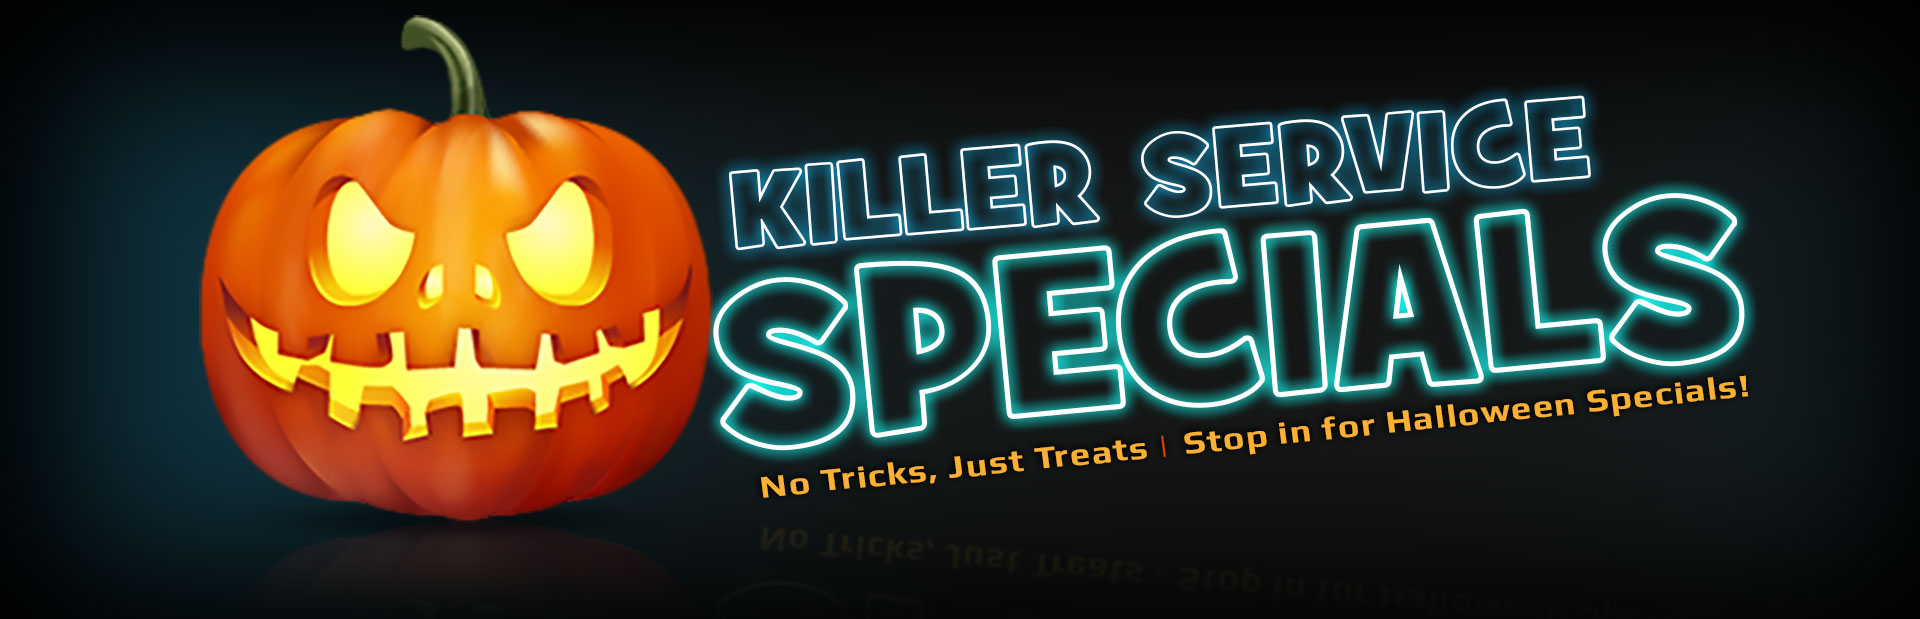 Halloween Service Specials: Click here to view our coupons.